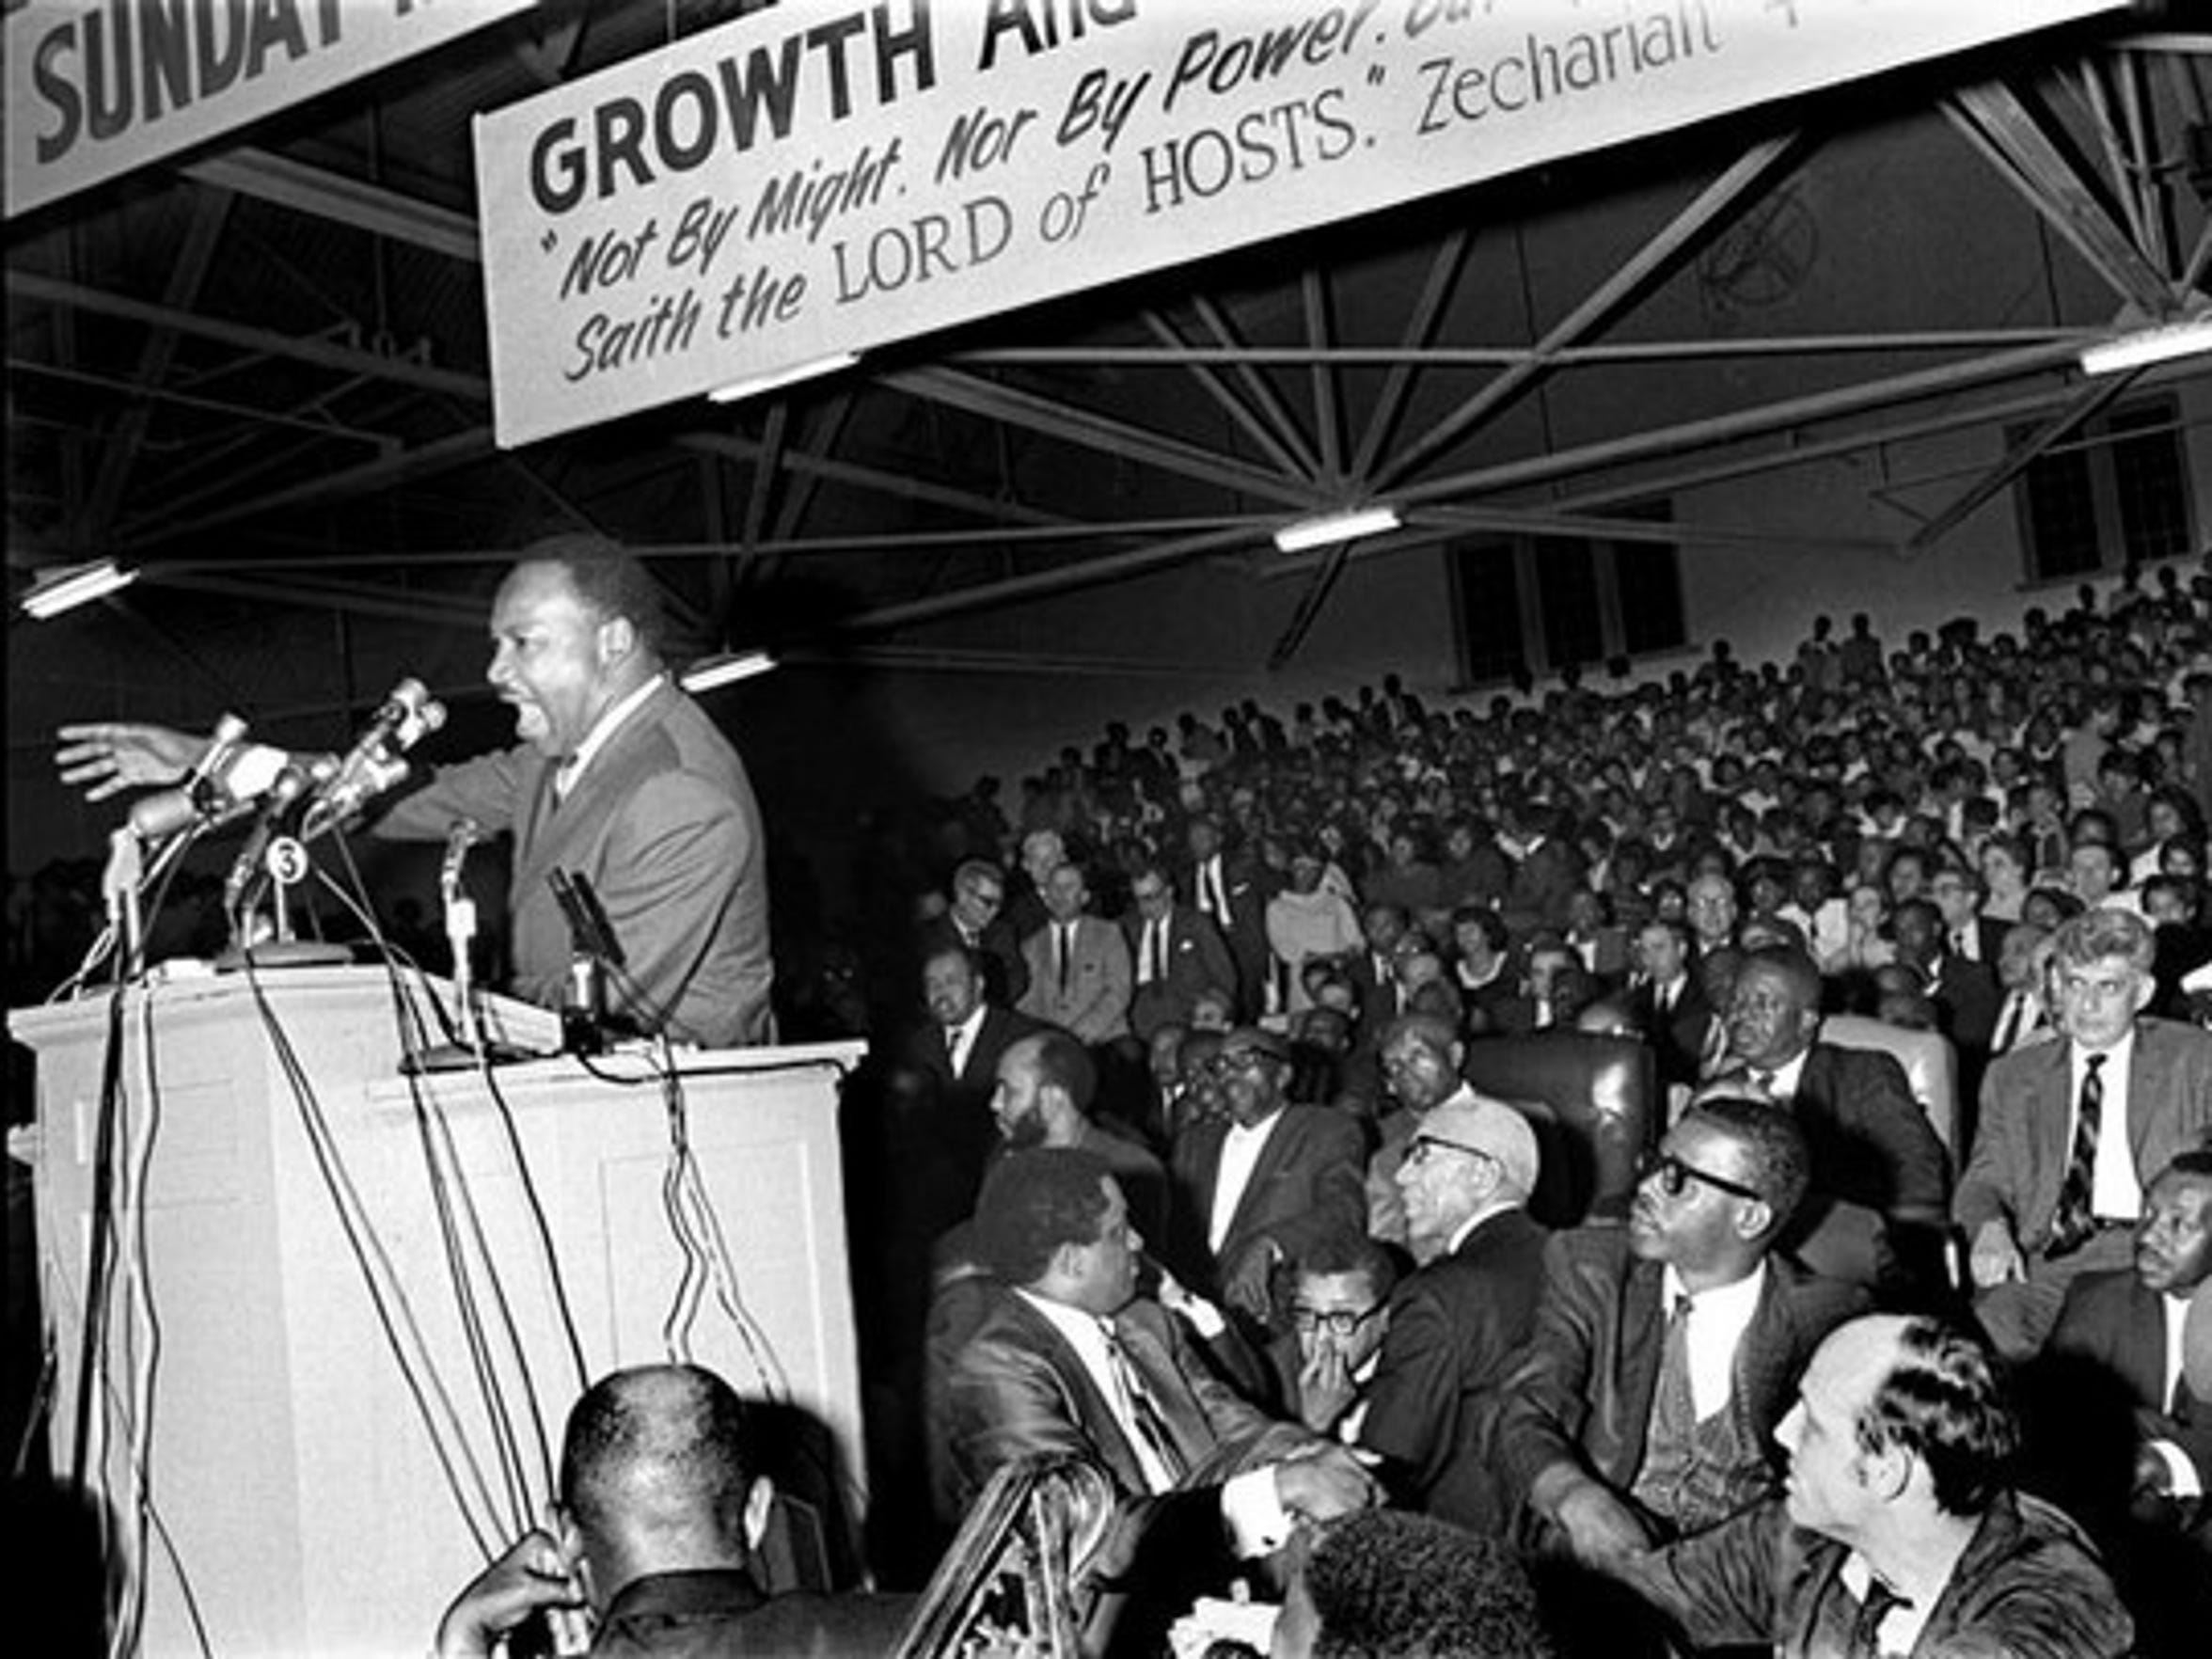 Dr. Martin Luther King Jr. at Mason Temple in Memphis on March 18, 1968.